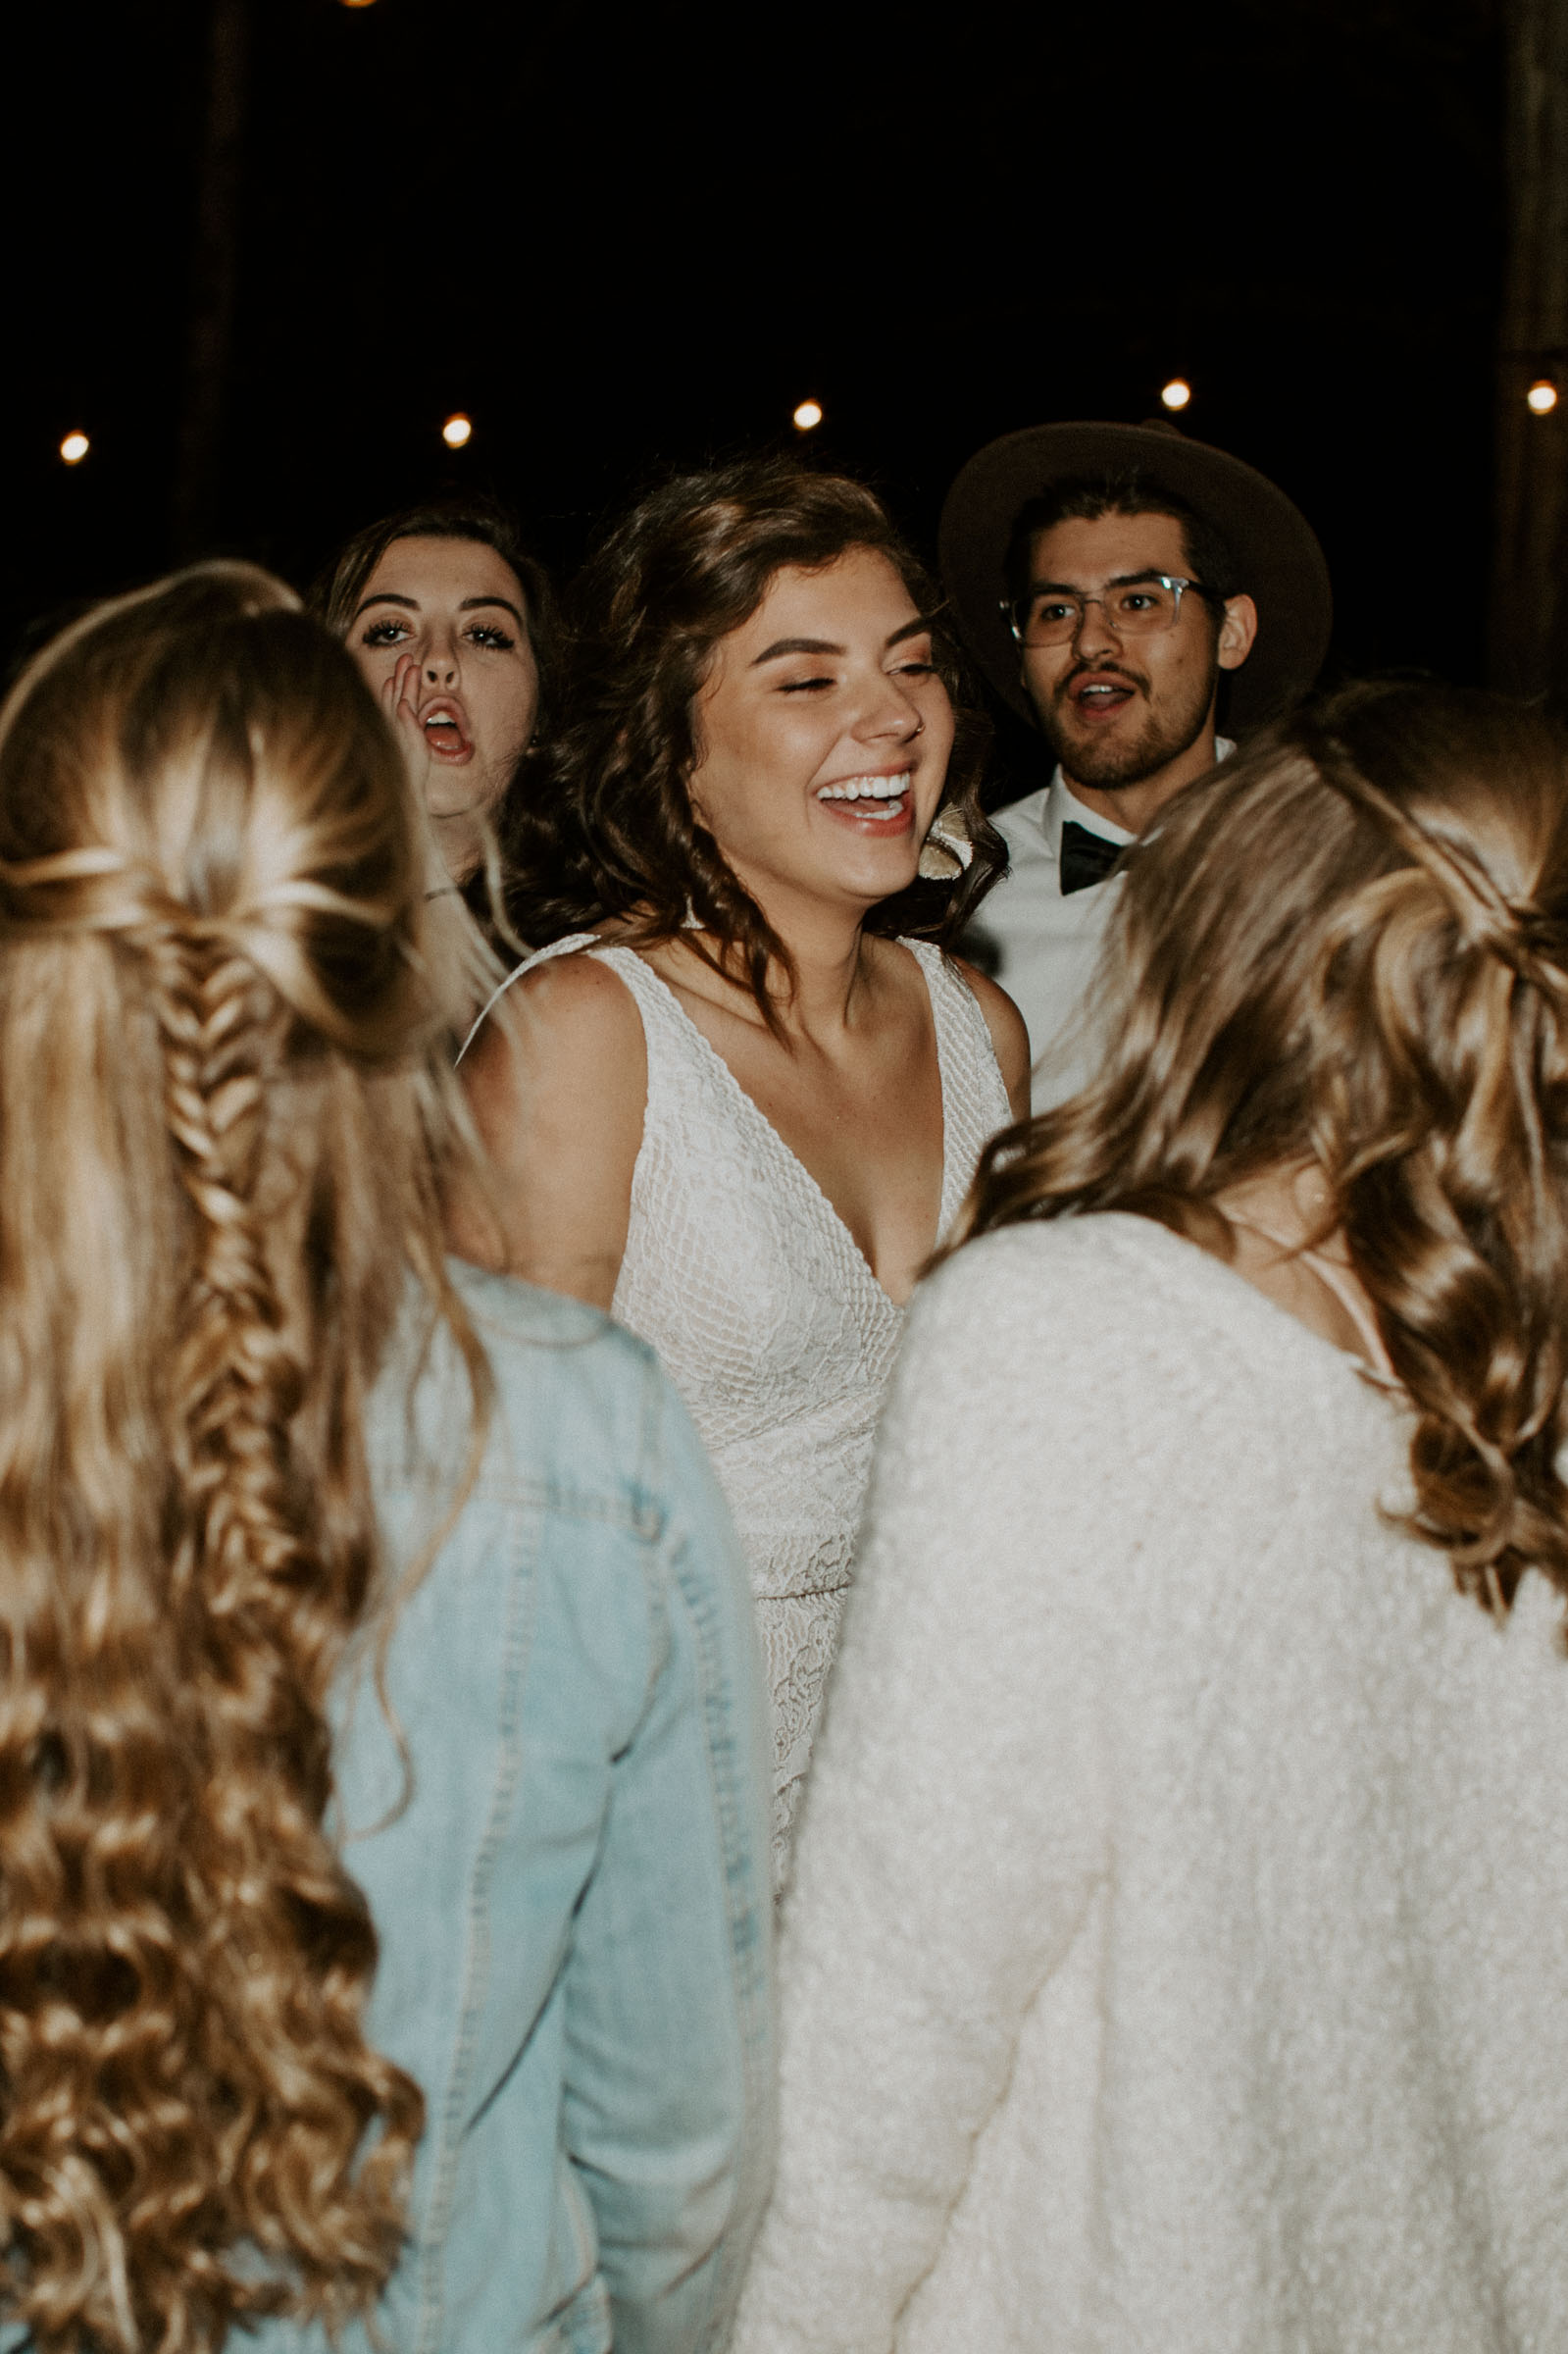 Bride dancing with friends on her wedding day